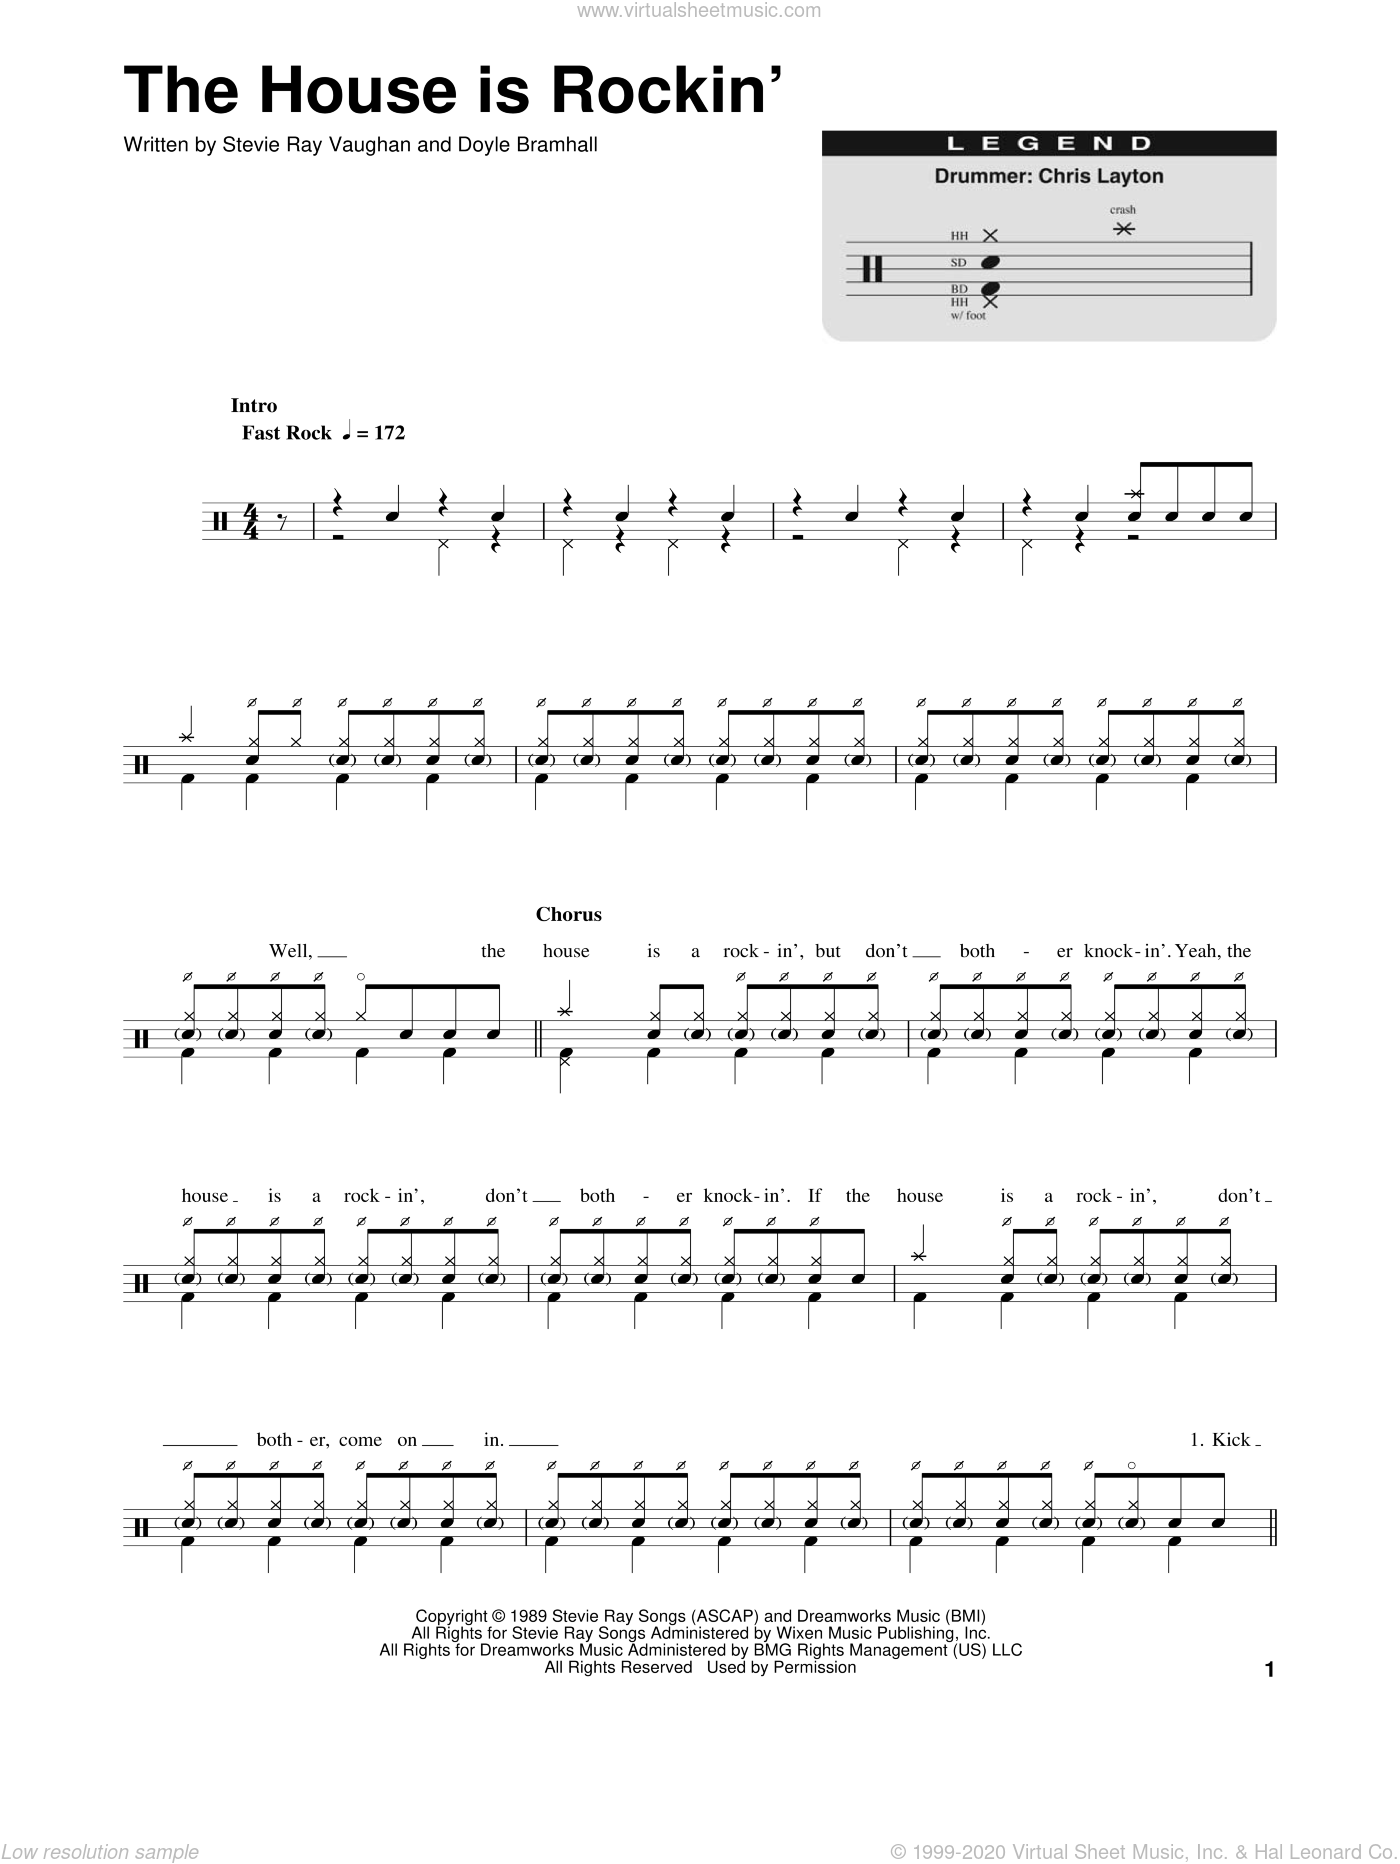 The House Is Rockin' sheet music for drums by Stevie Ray Vaughan and Doyle Bramhall, intermediate